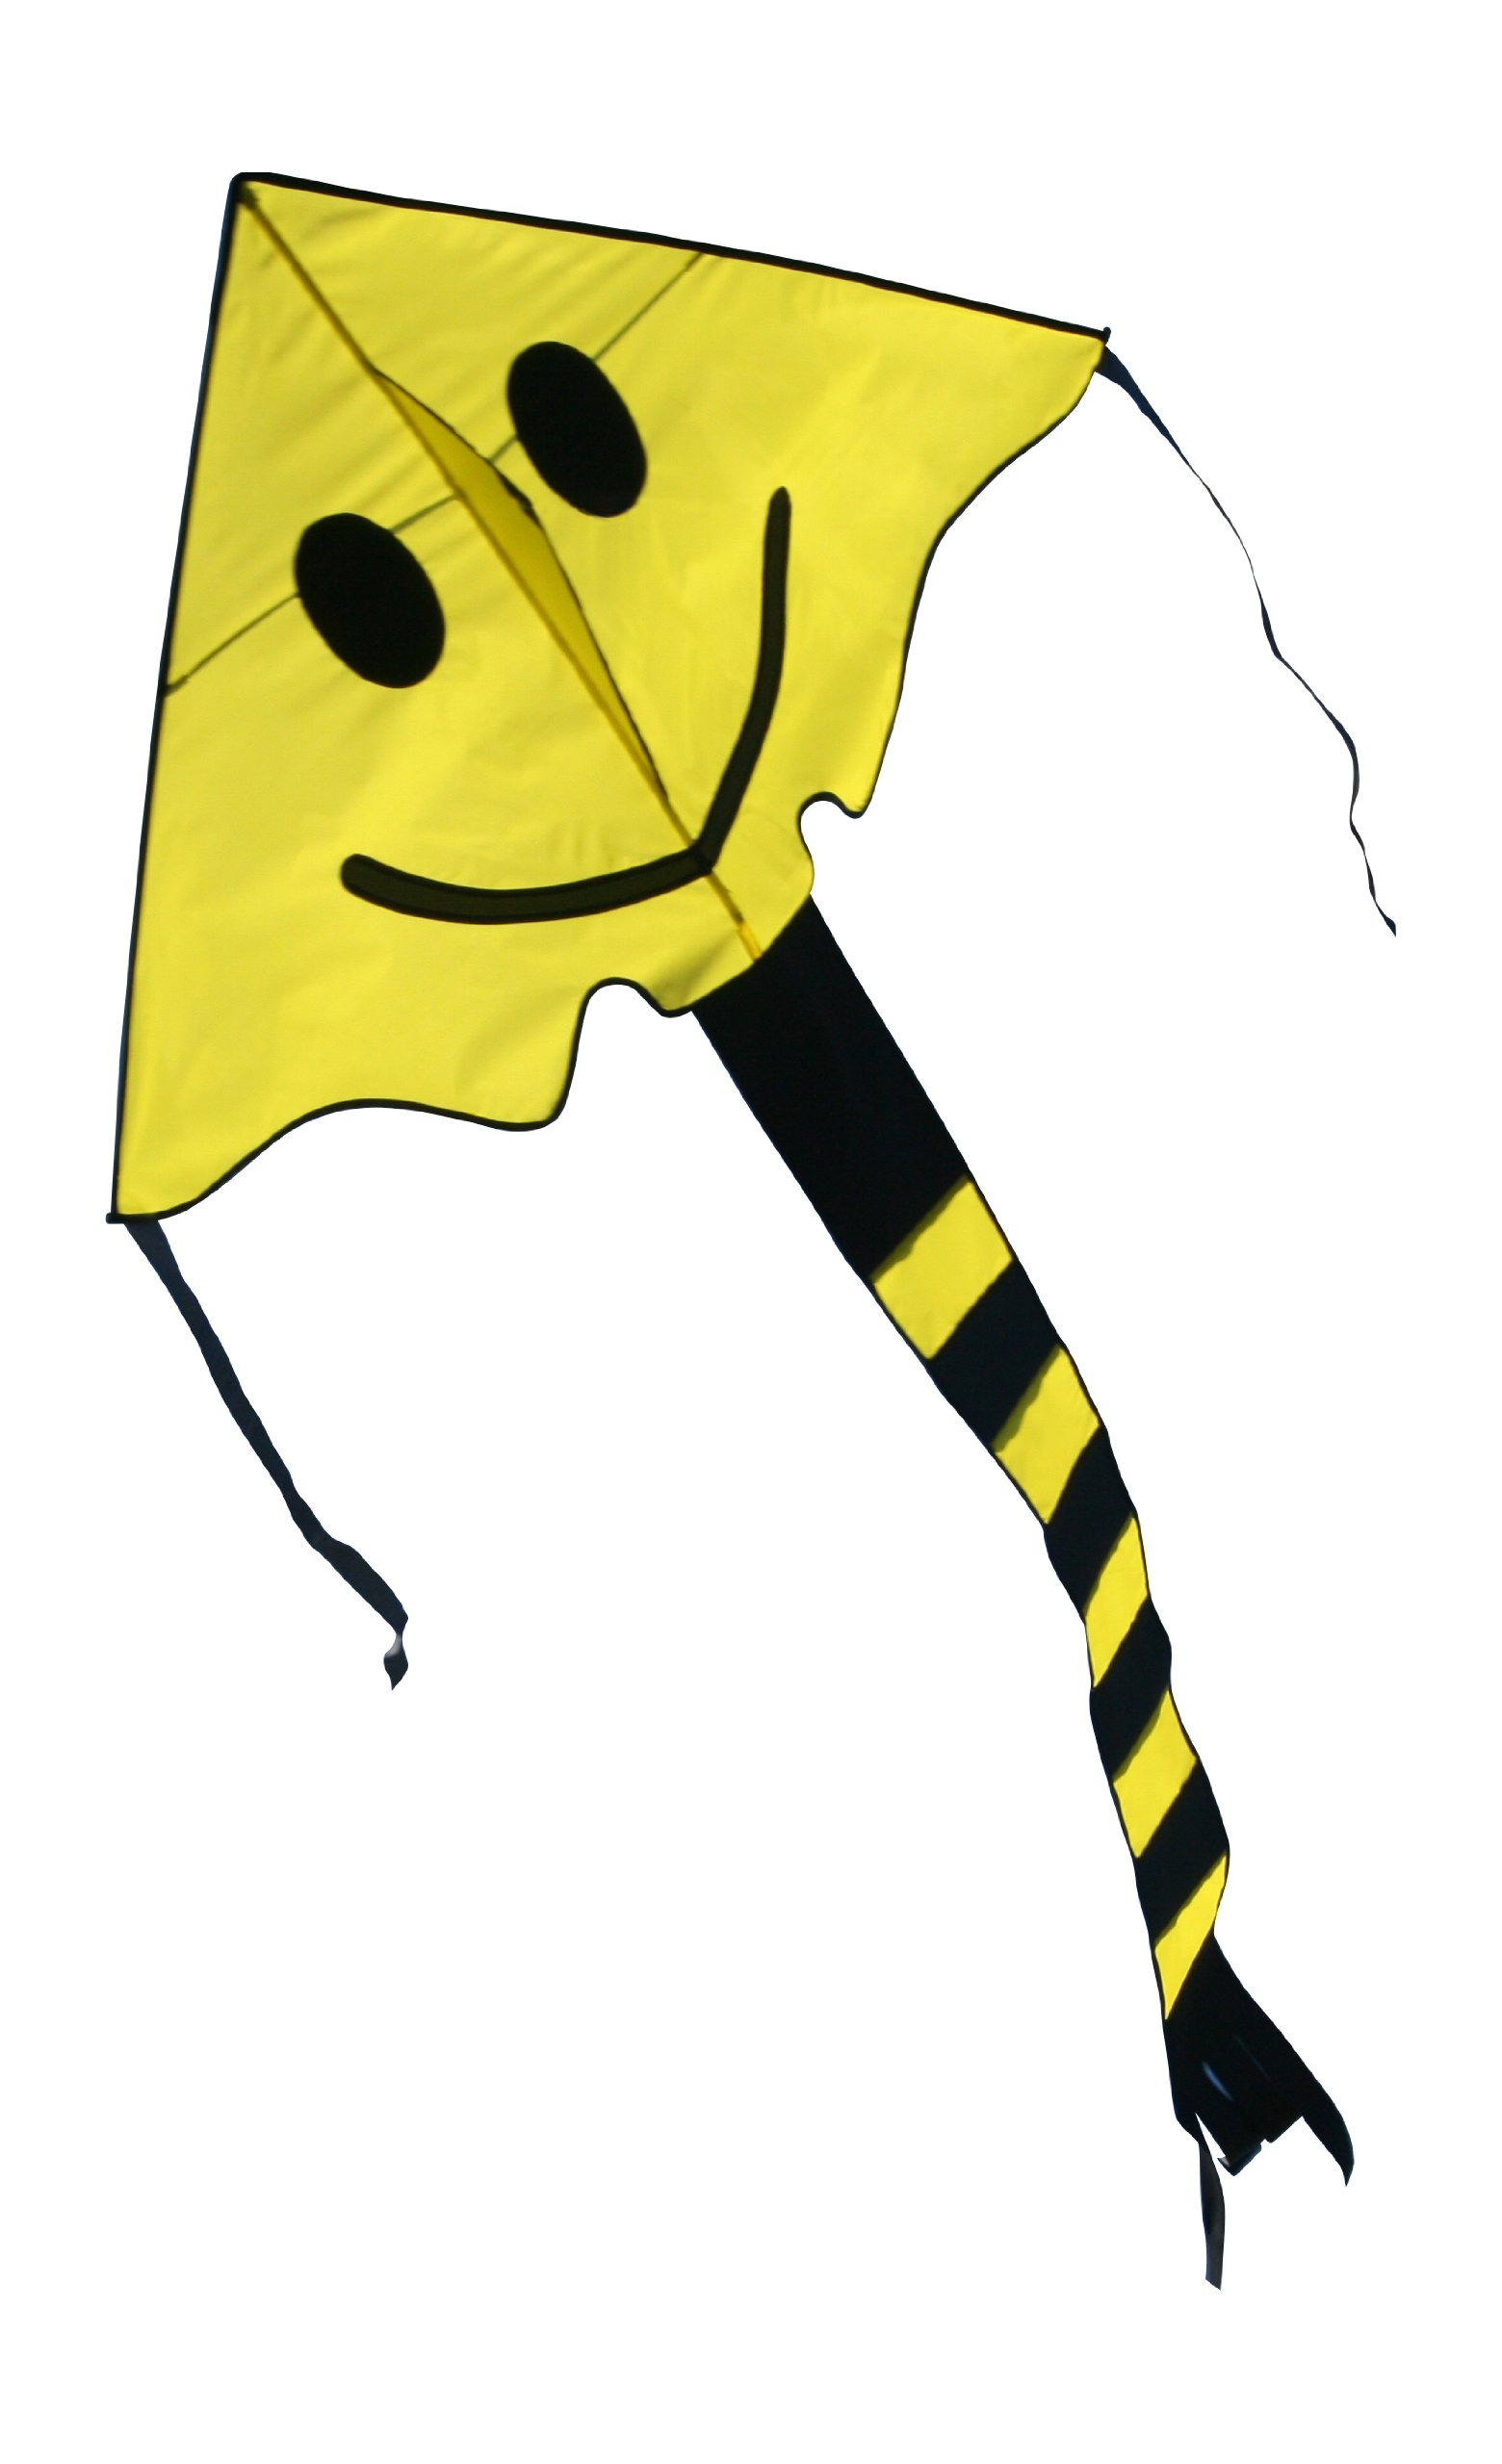 Kites For Kids - Cute Smiley Face Kite For Kids 3 Years And Older Ready To Fl.. 16